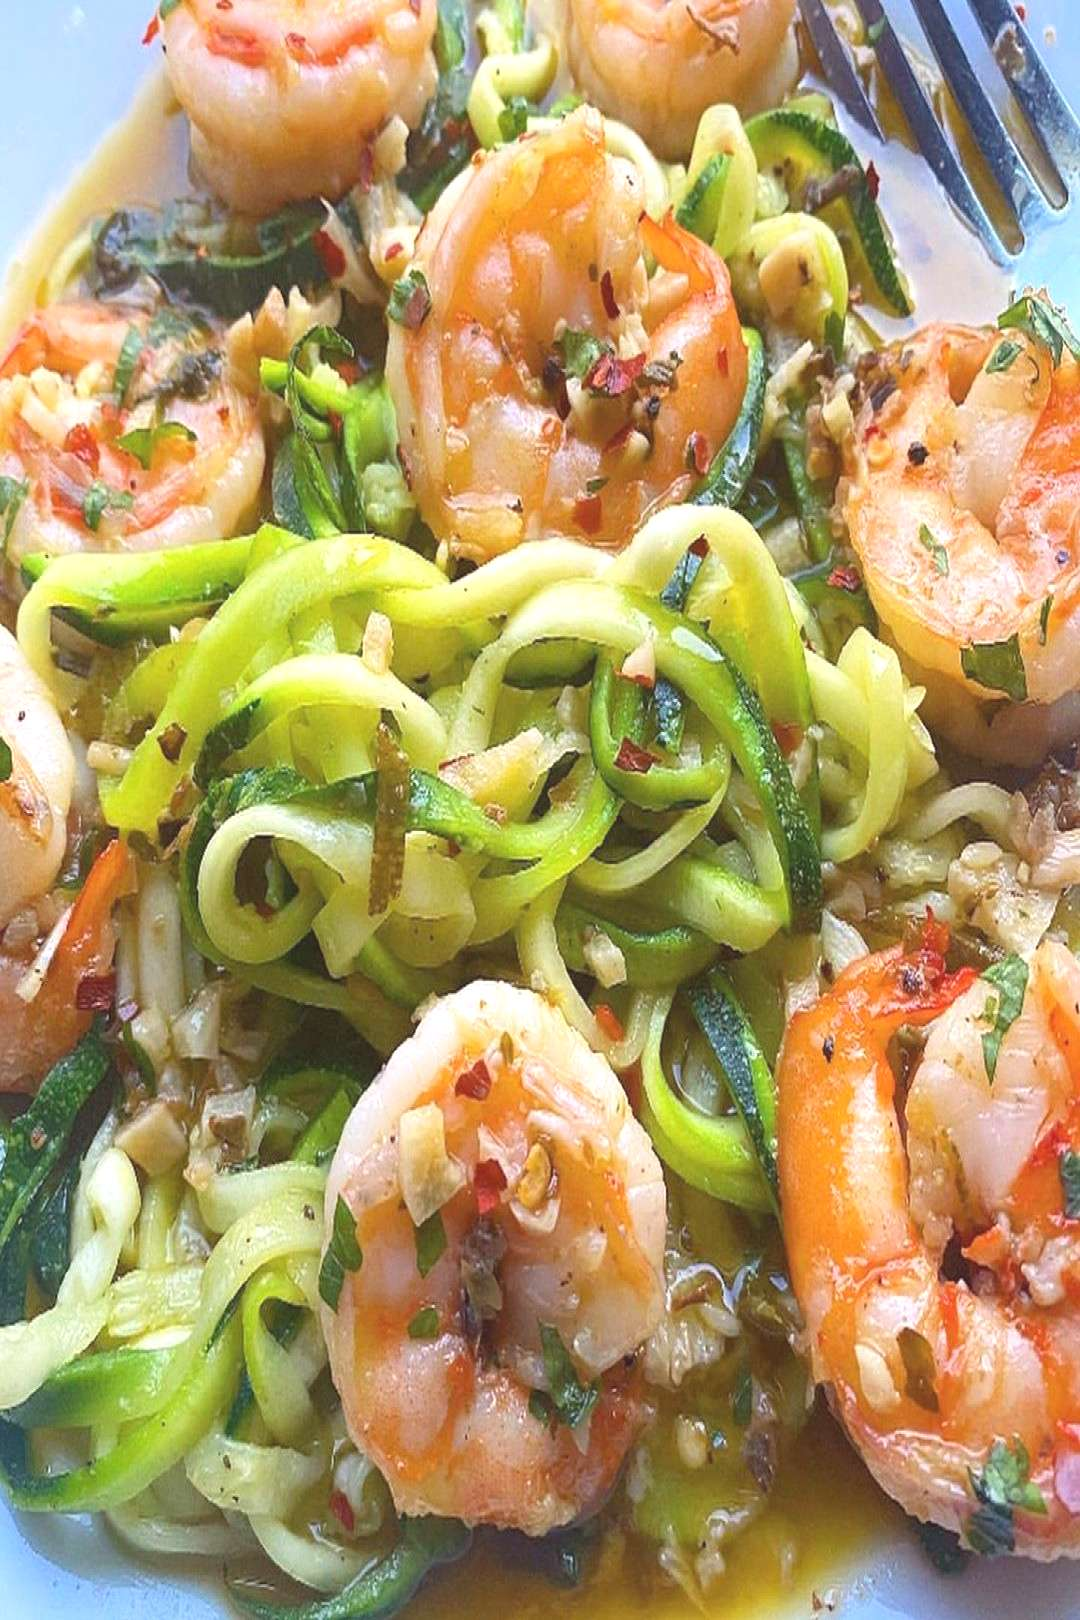 My dinner last night was shrimply delicious! A healthier version